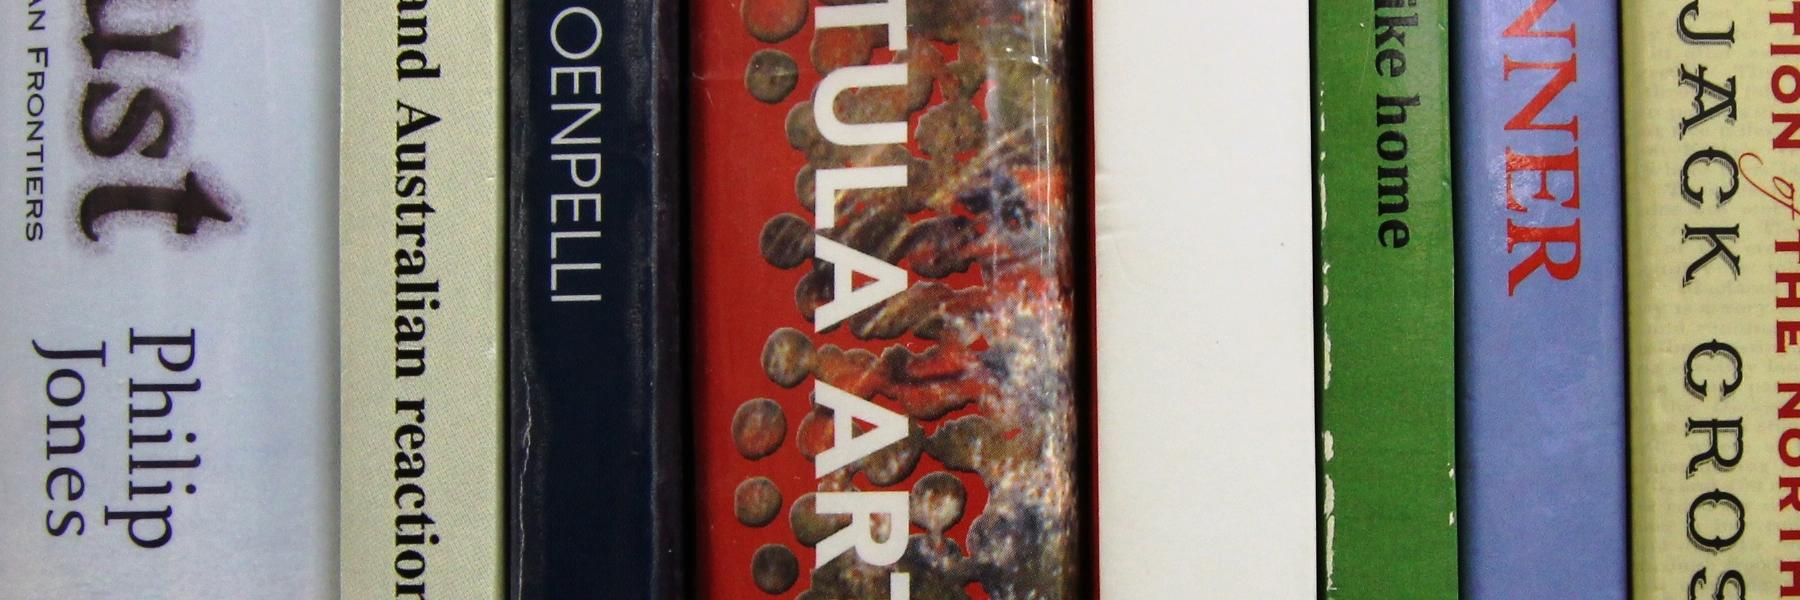 Photo of the book spines of past winners of the Chiref Minister's Northern Territory History Book Award